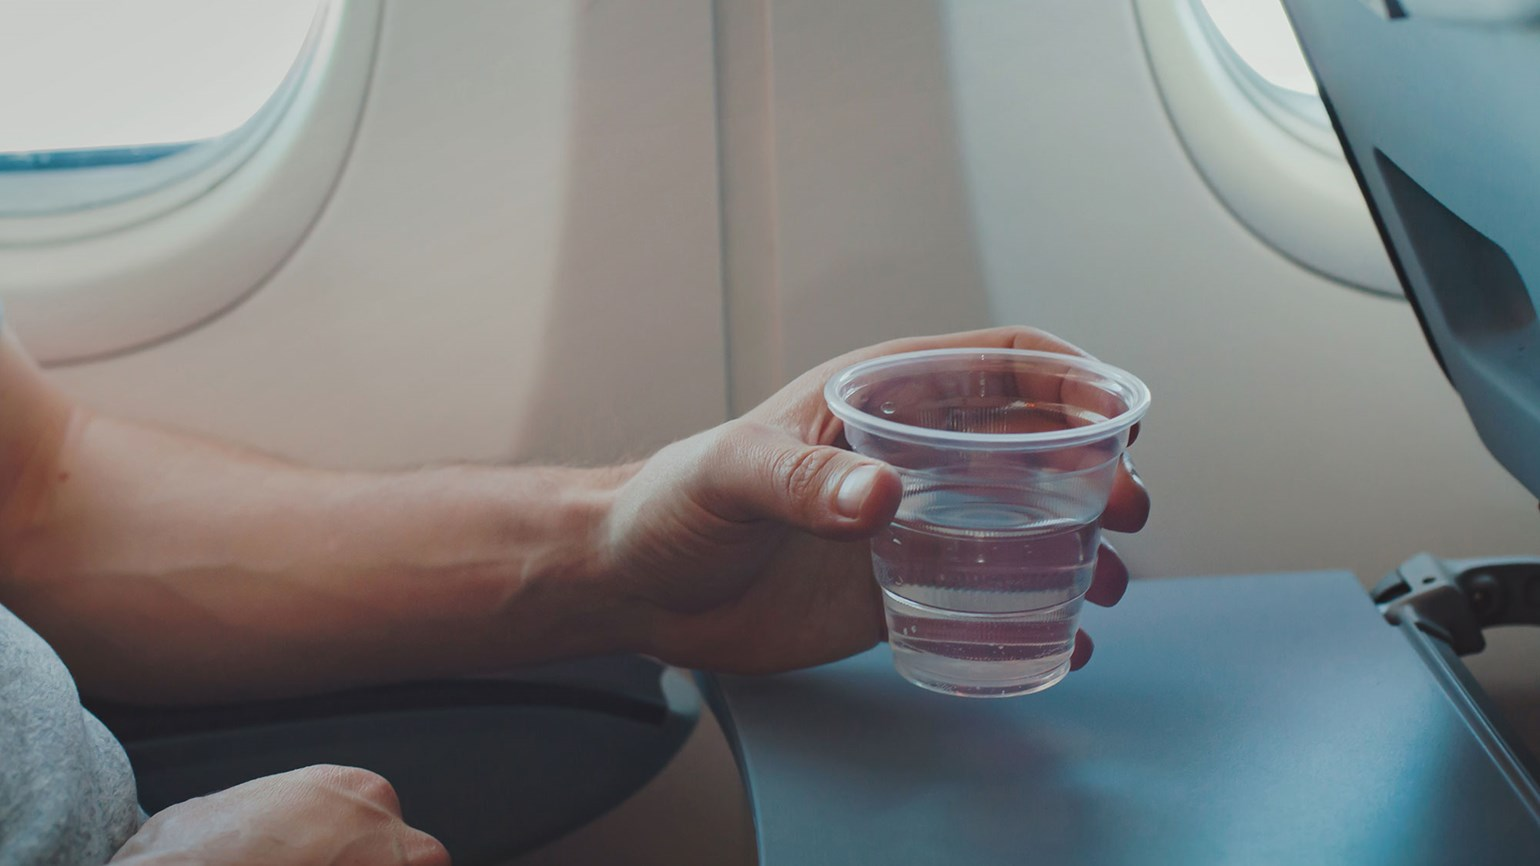 Drinking water on an airplane not recommended